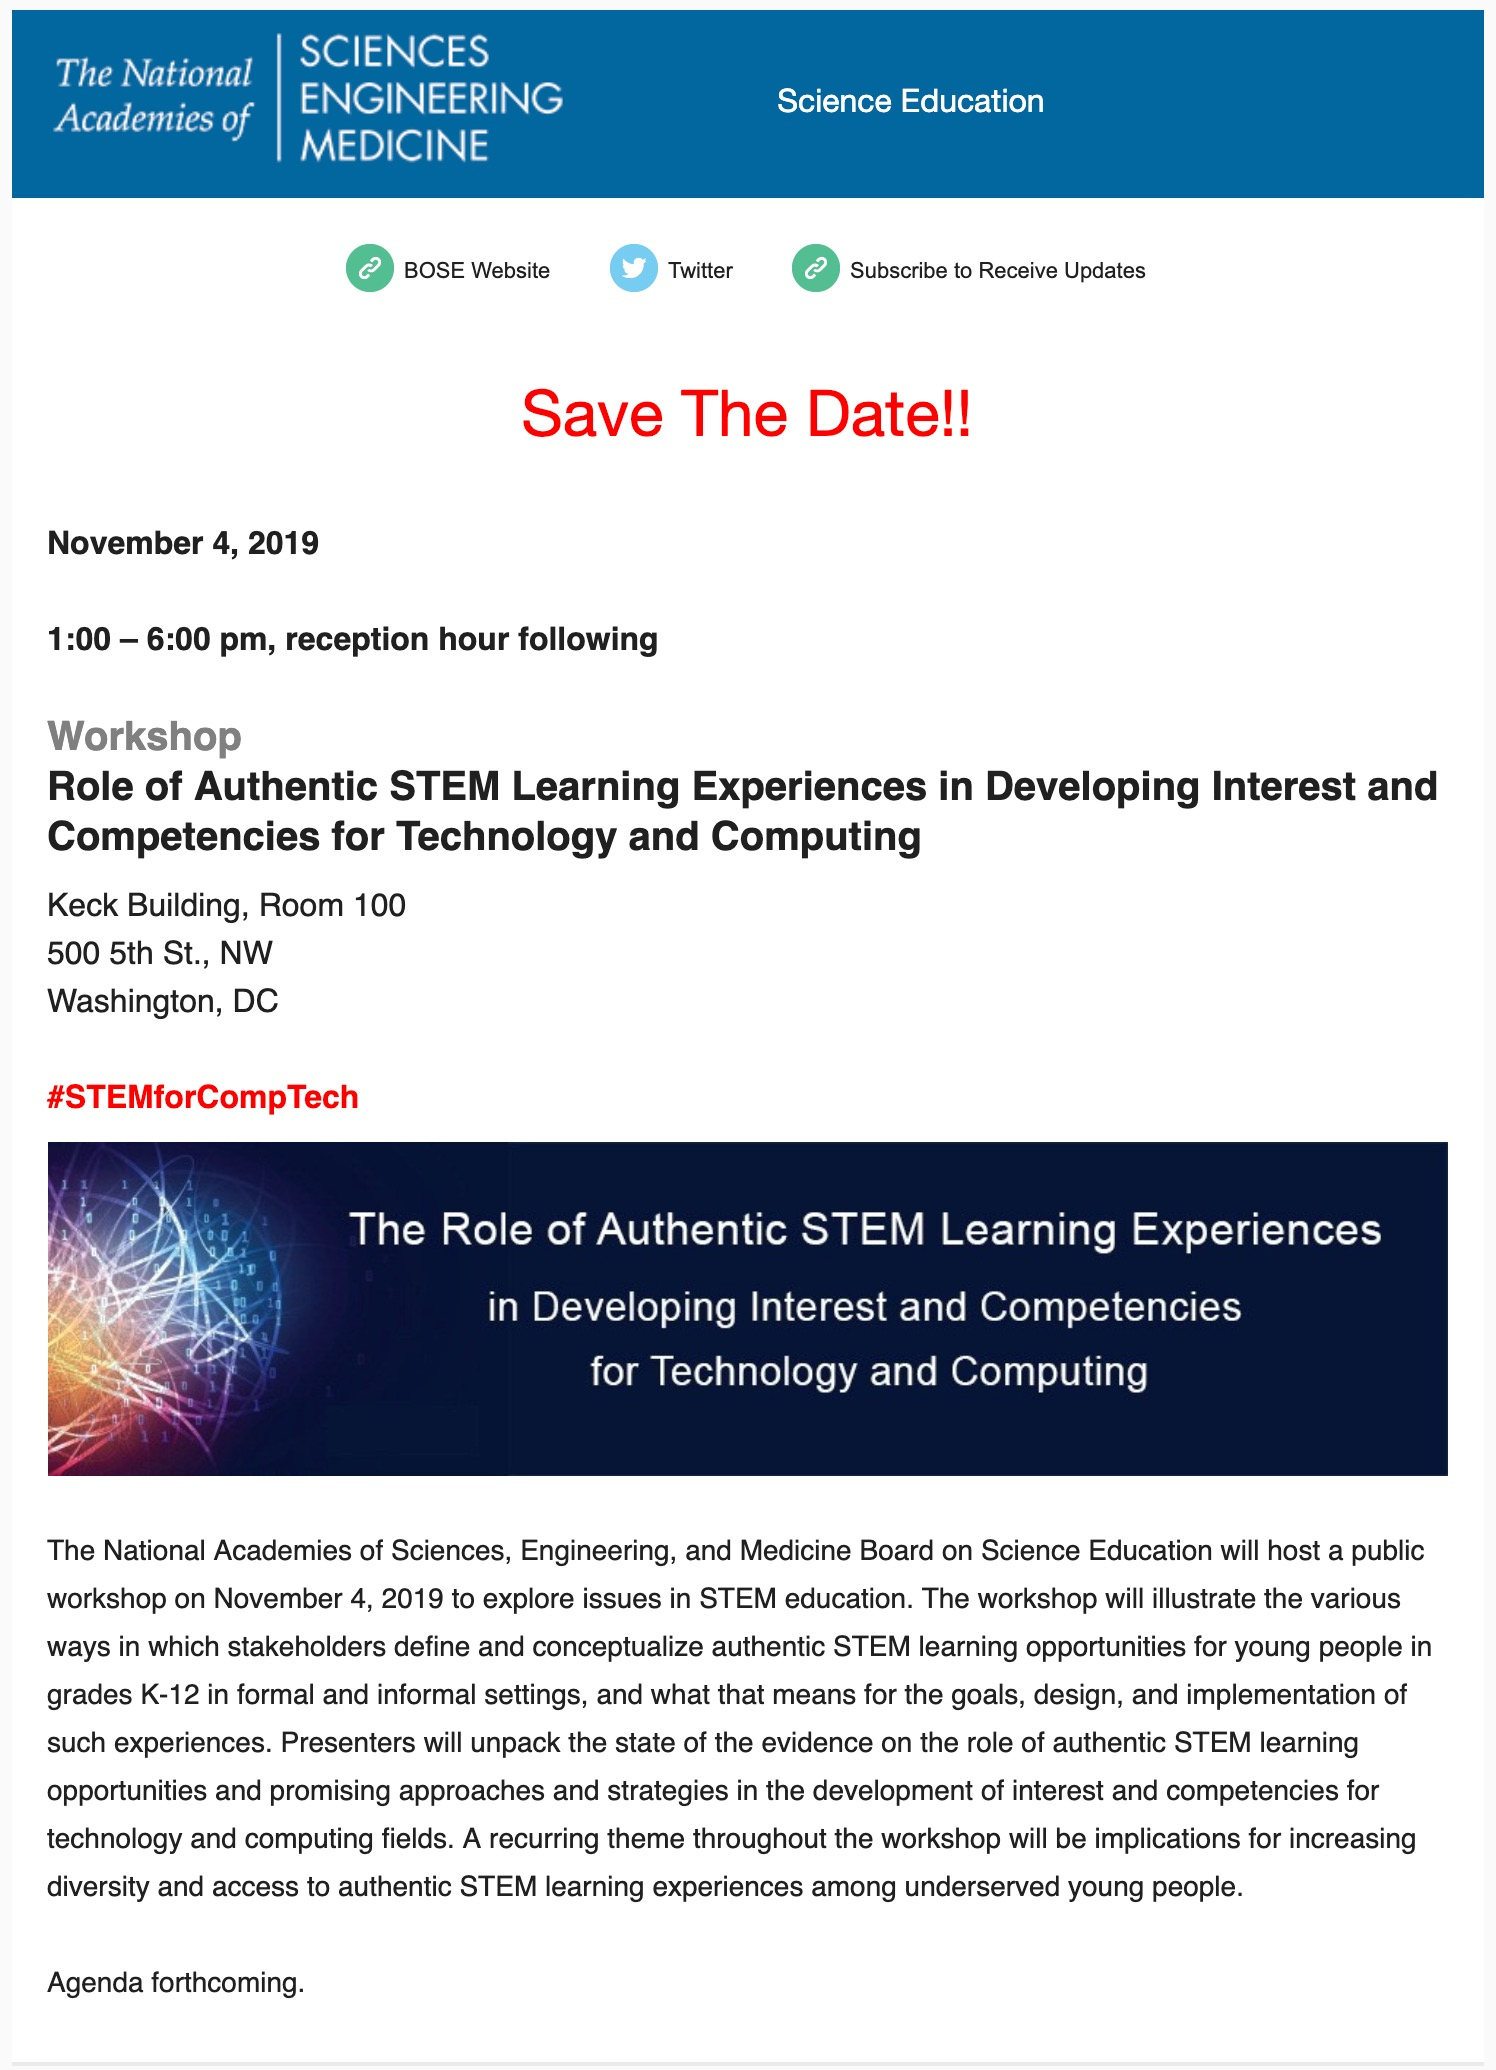 Save_The_Date__November_4th_Workshop-Role_of_Authentic_STEM_Learning_Experiences_in_Developing_Interest_and_Competencies_for_Technology_and_Computing